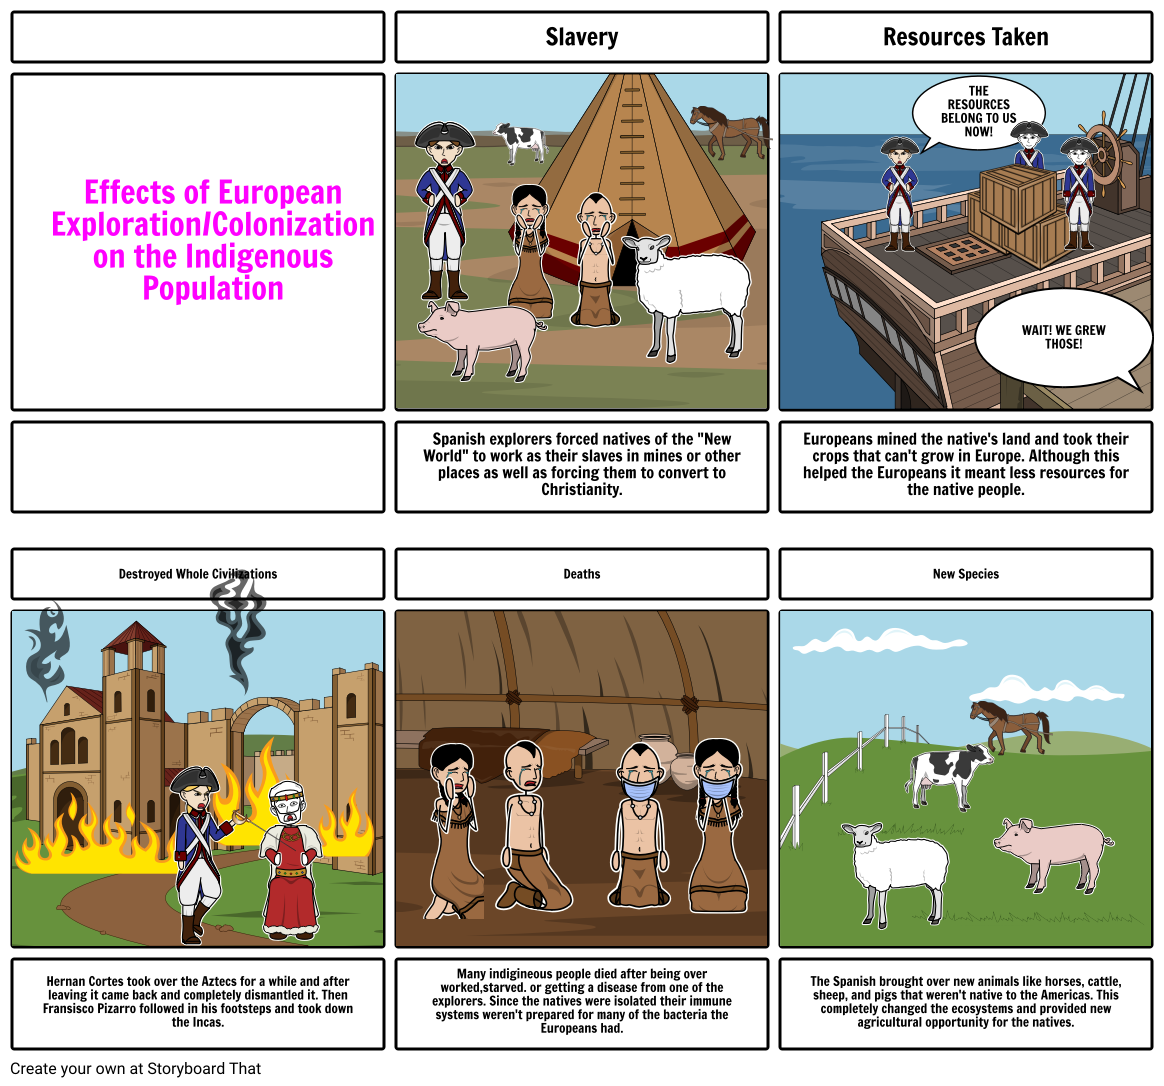 Effects of European Exploration/Colonization on the Indigenous Population